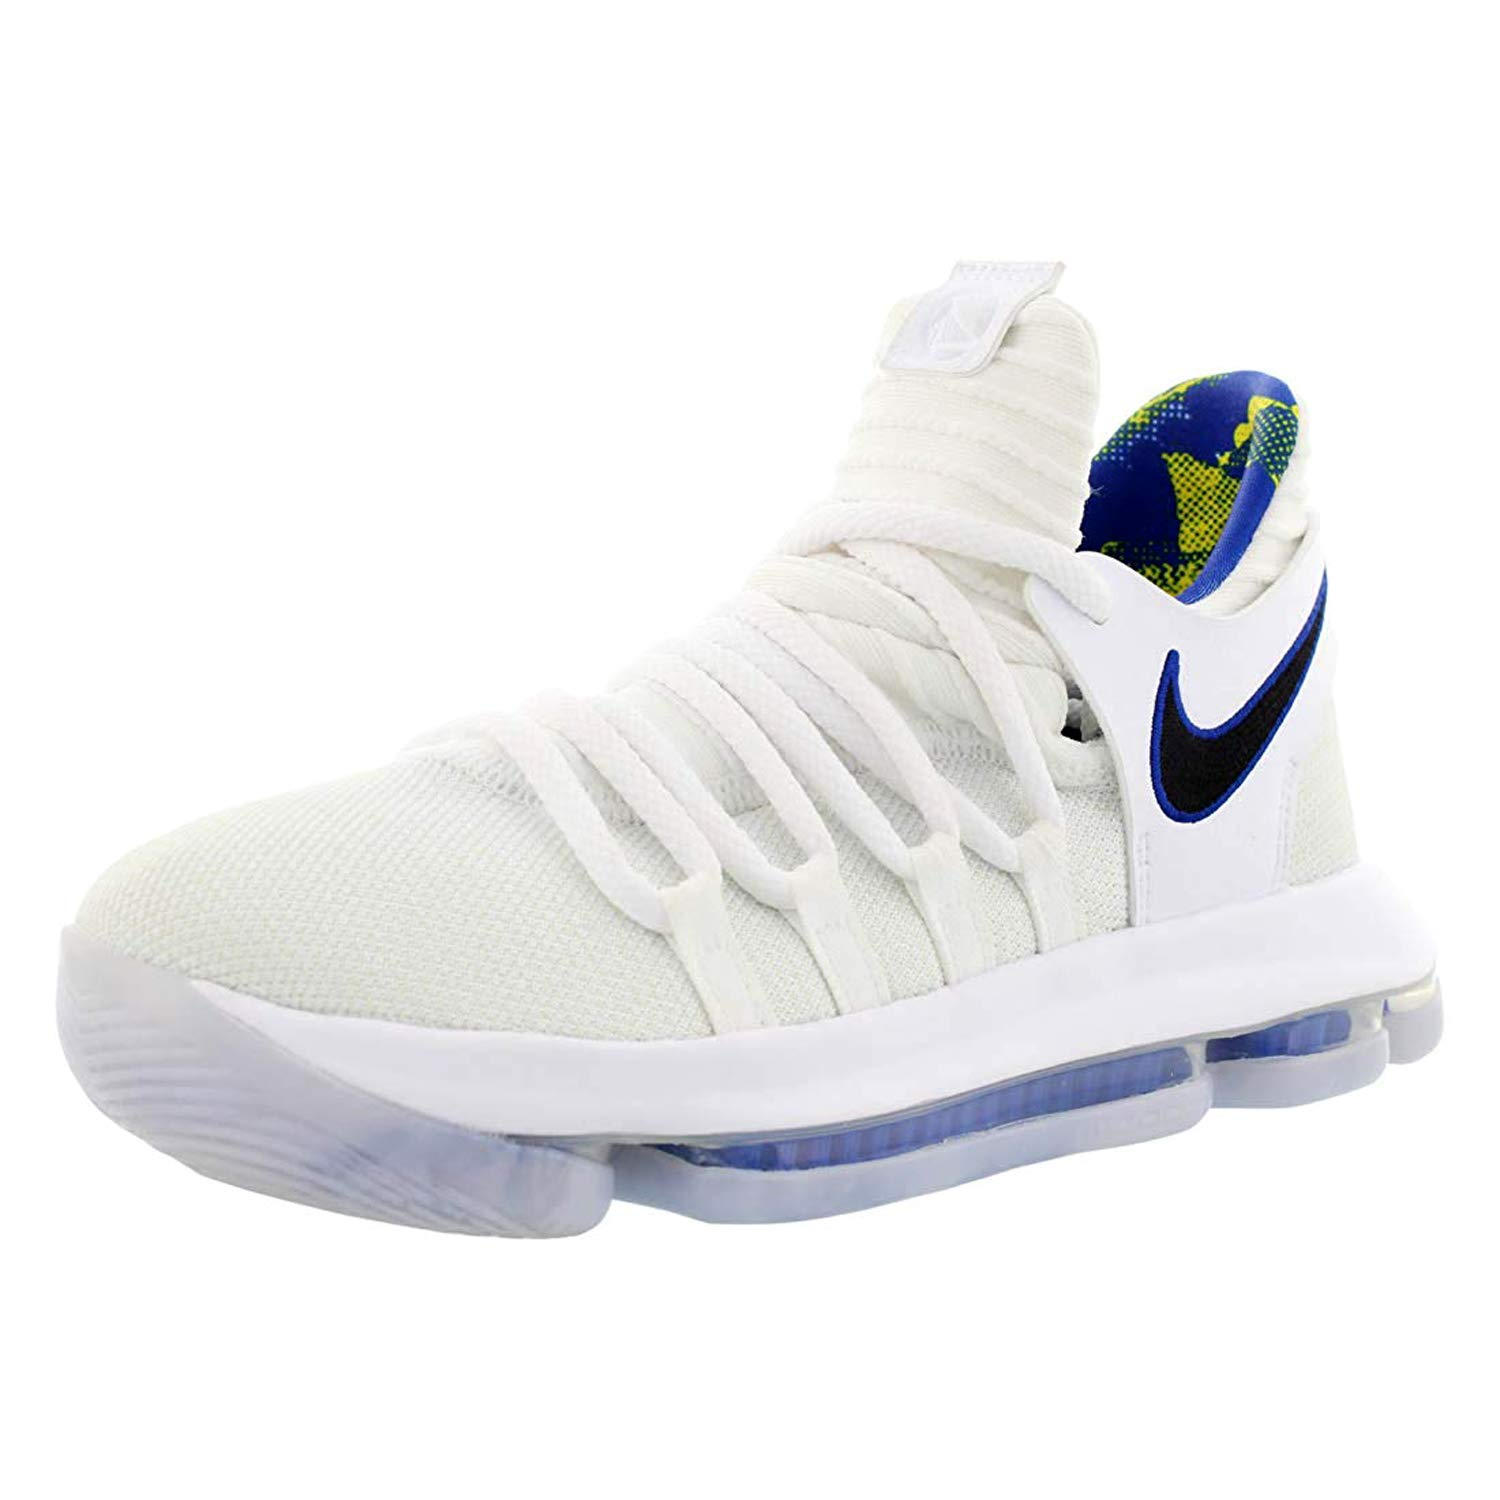 new product 385bc 9fd1d Nike Zoom KD10 LMTD NBA Grade School Basketball Shoes (6 M US Big Kid,  White/Game Royal/University Gold)